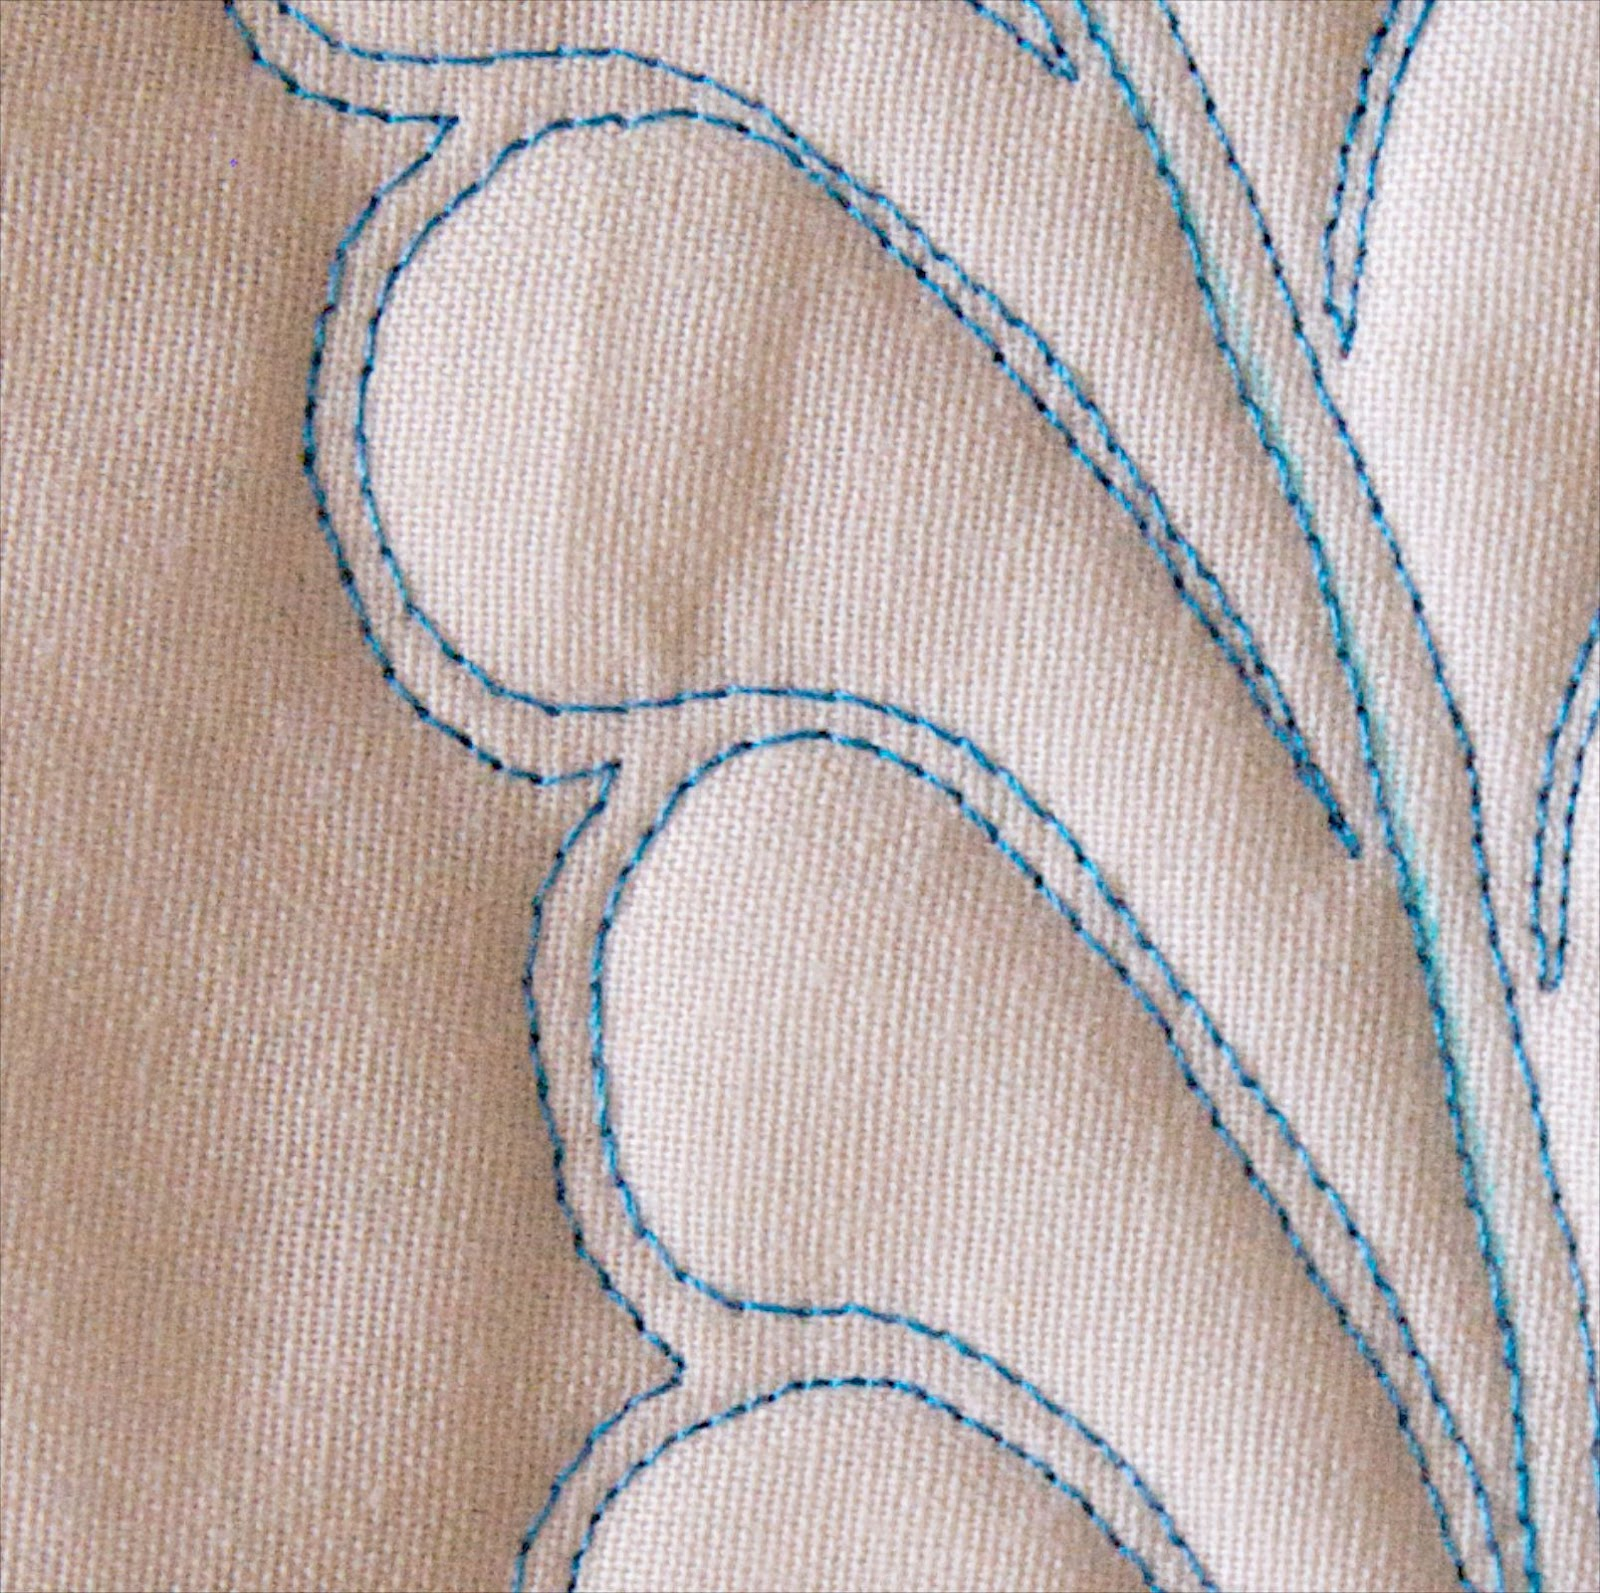 Infinite Feathers Quilting Design Template